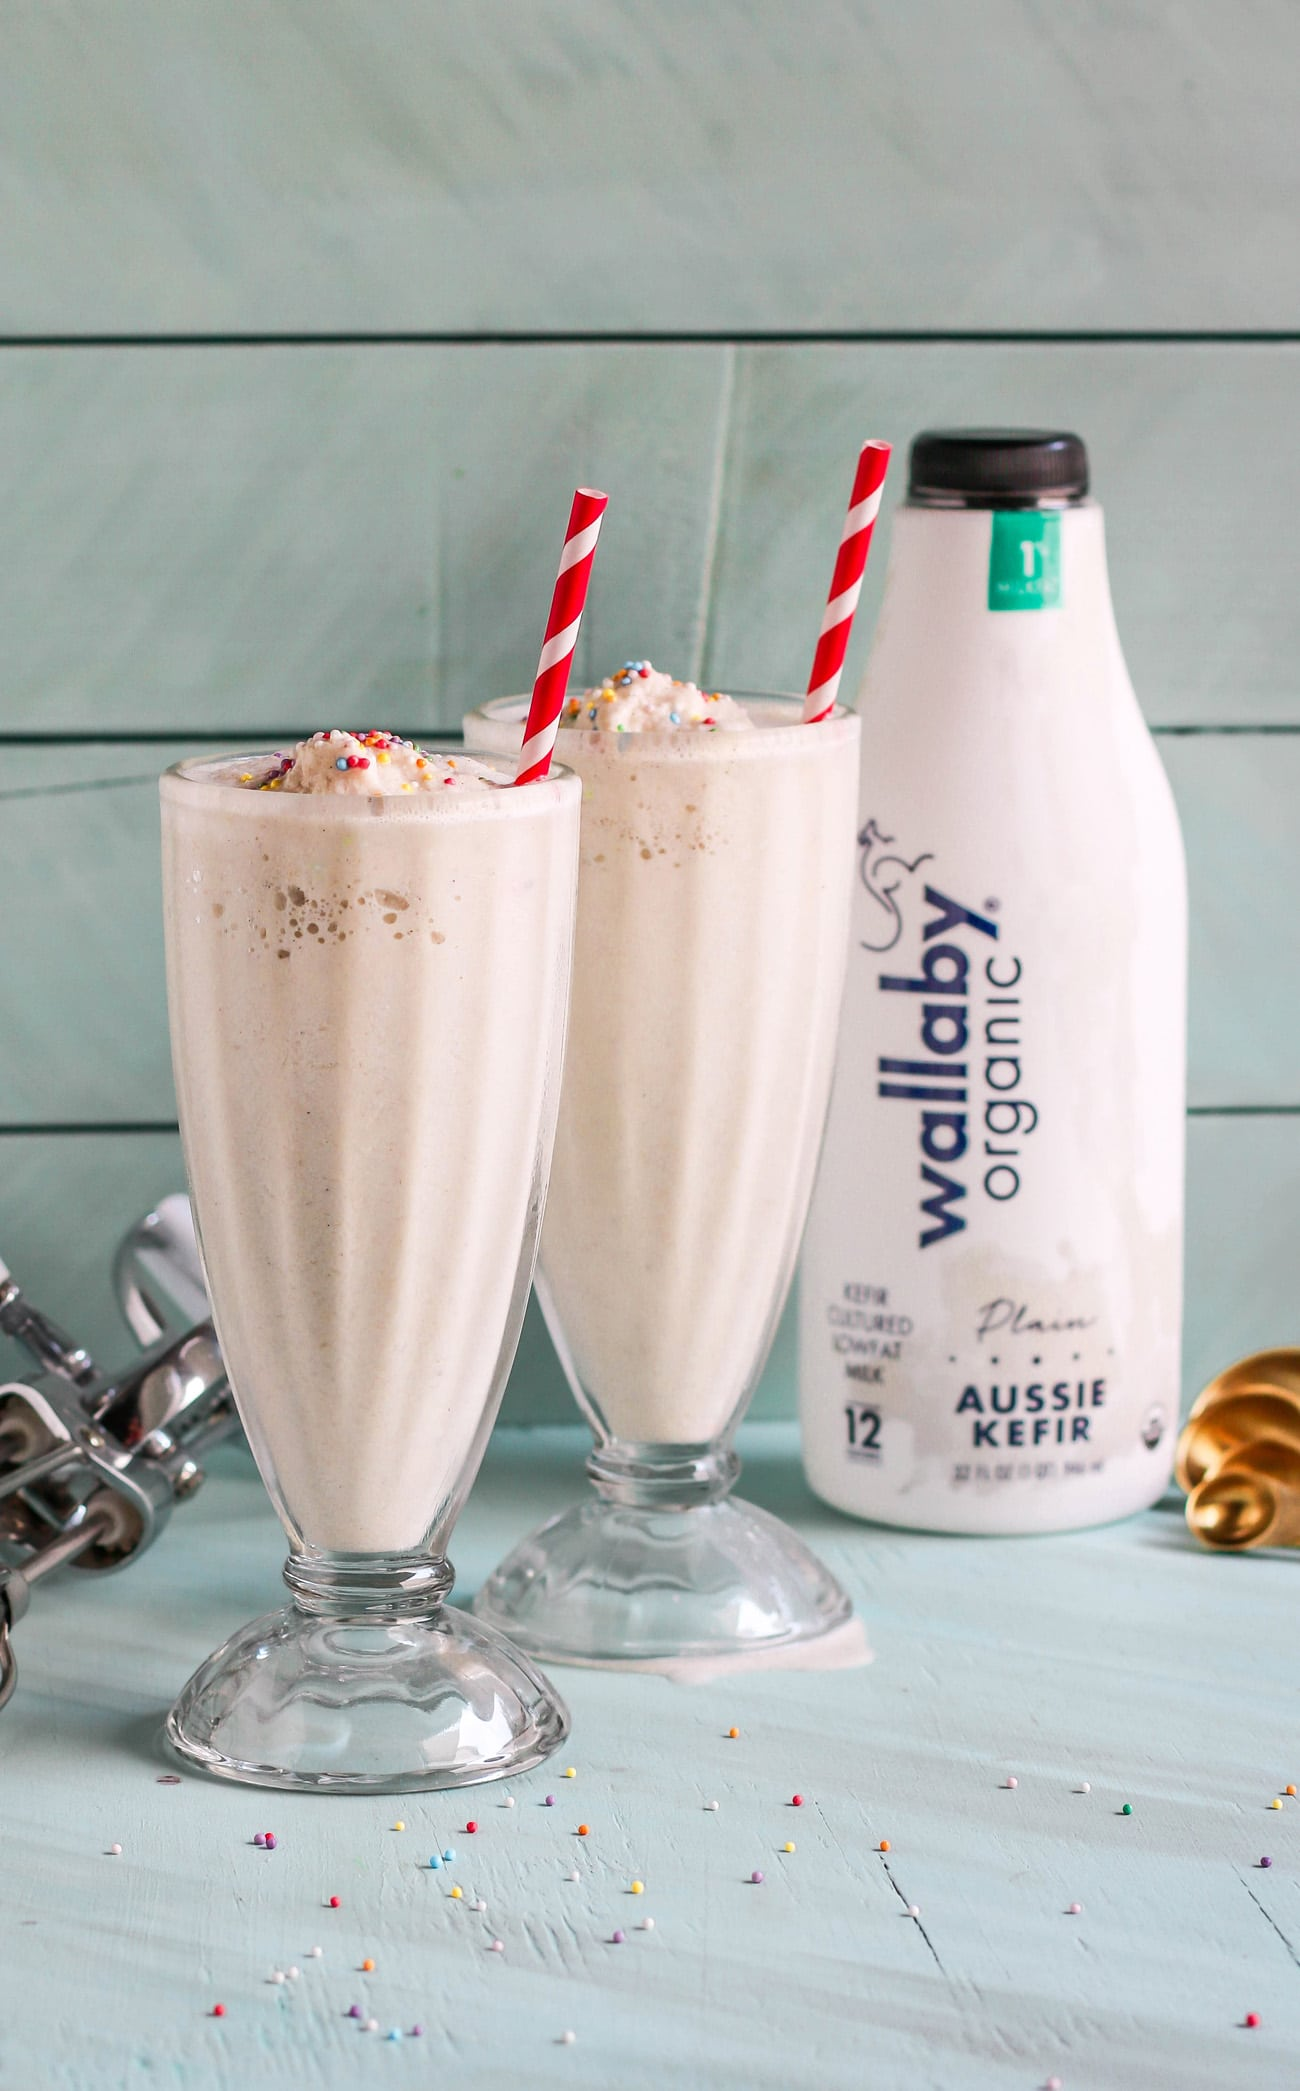 When you're craving cake but don't want to go through the hassle of baking, make this Cake Batter Milkshake! It's secretly sugar free, low fat, high protein, and gluten free too, made with kefir (or yogurt), oats, vanilla, and a couple secret ingredients that make it taste just like vanilla cake in drinkable form.